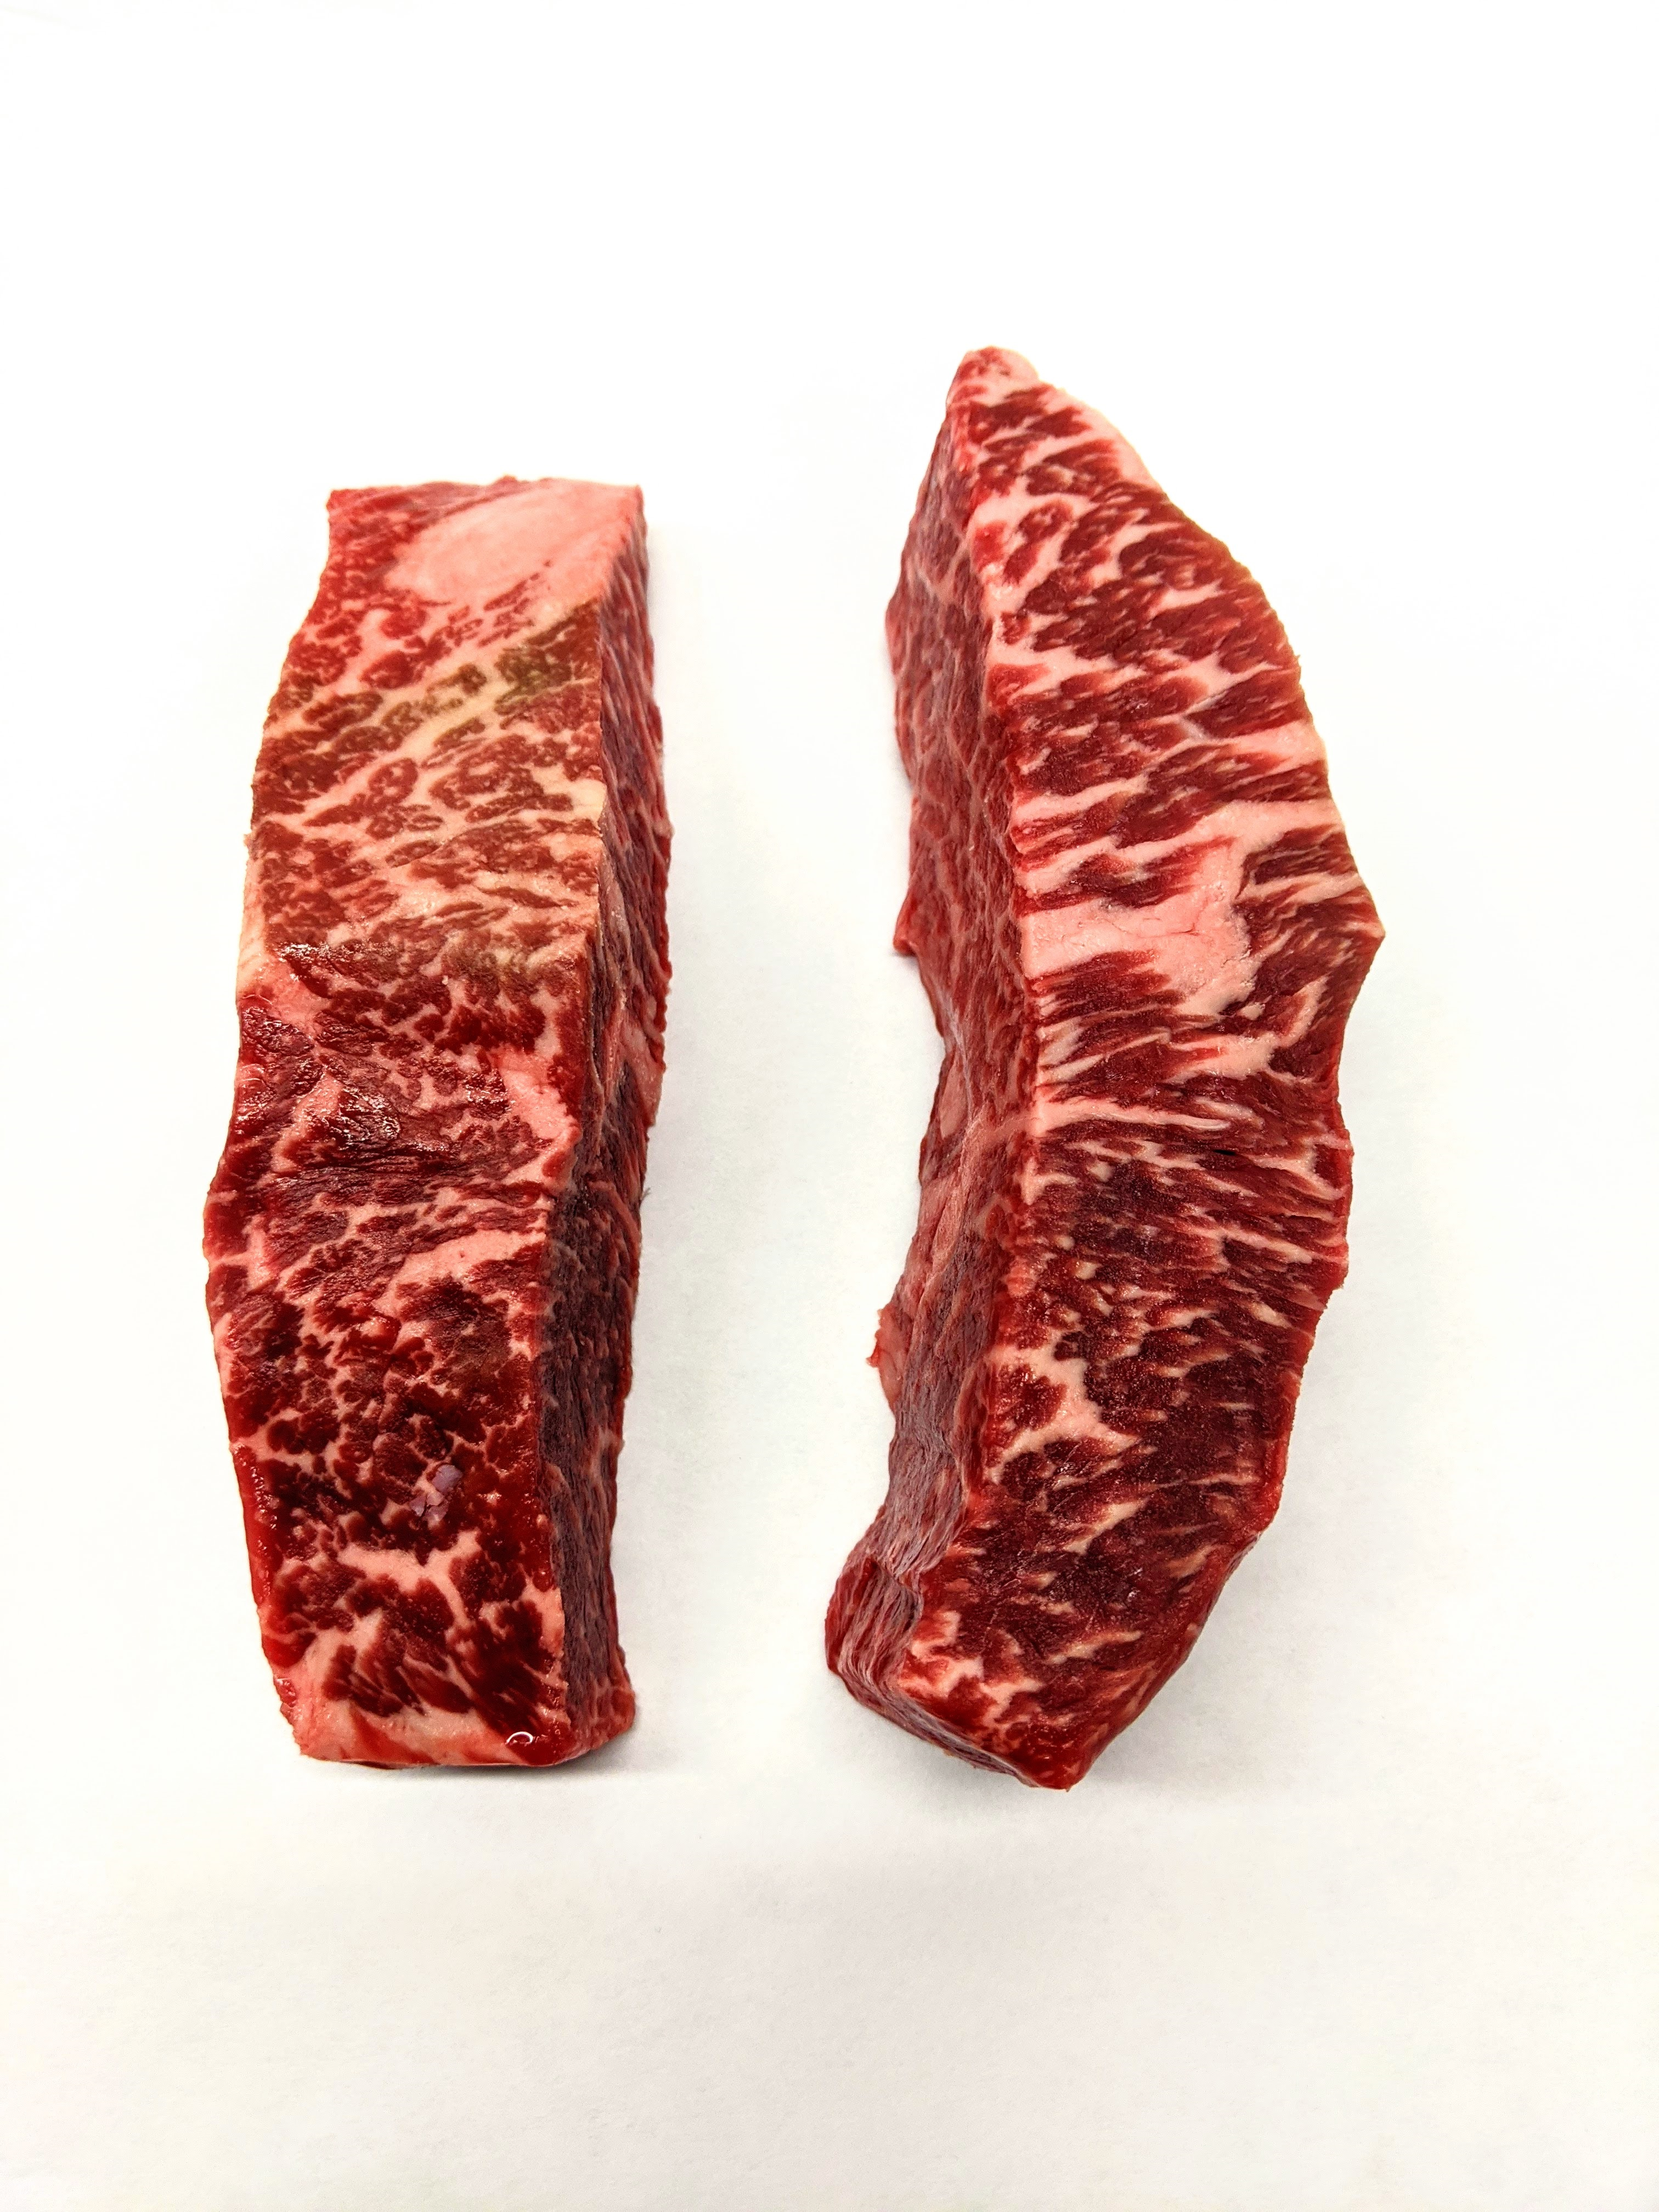 Picture 5pc 56 Day Dry-Aged Wagyu End Cut New York Strip